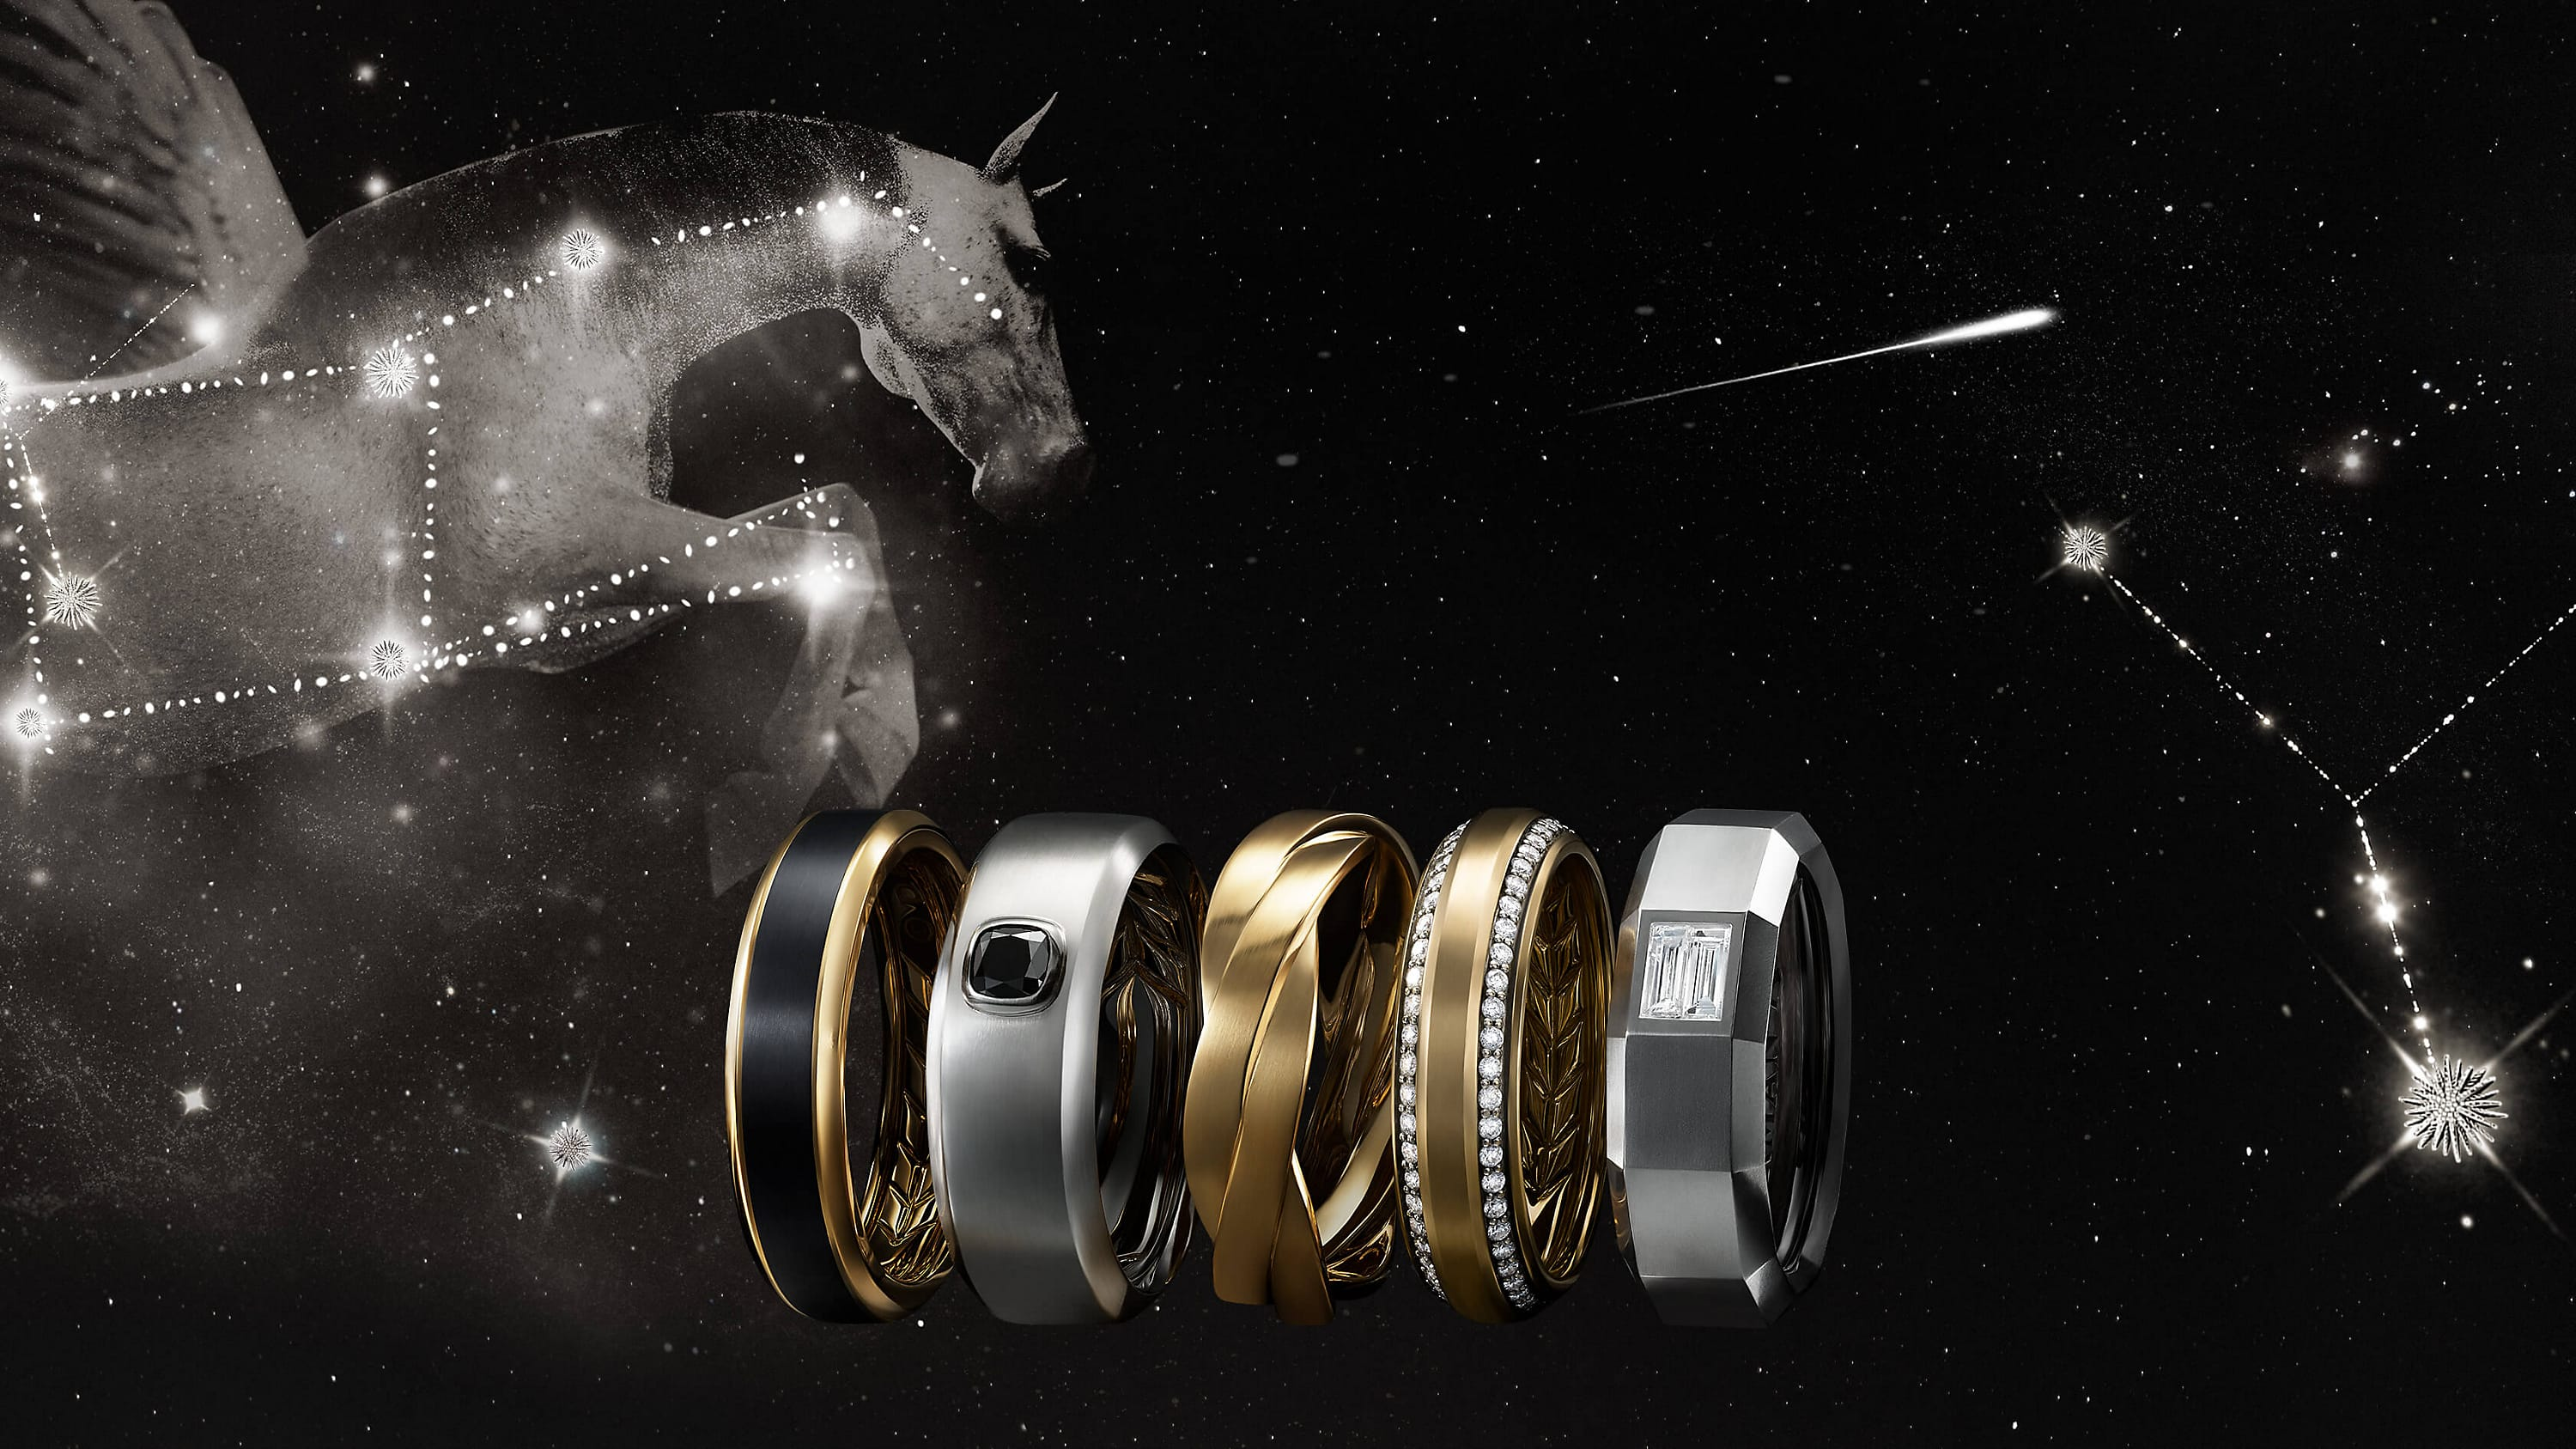 A color photo shows a horizontal stack of five David Yurman men's bands floating in front of a starry night sky with a Pegasus flying behind a constellation of Starburst-shaped stars. Three of the men's rings are crafted from 18K yellow gold with or without pavé white diamonds or black titanium. Two of the rings are crafted from 18K white gold with or without black or white diamonds.